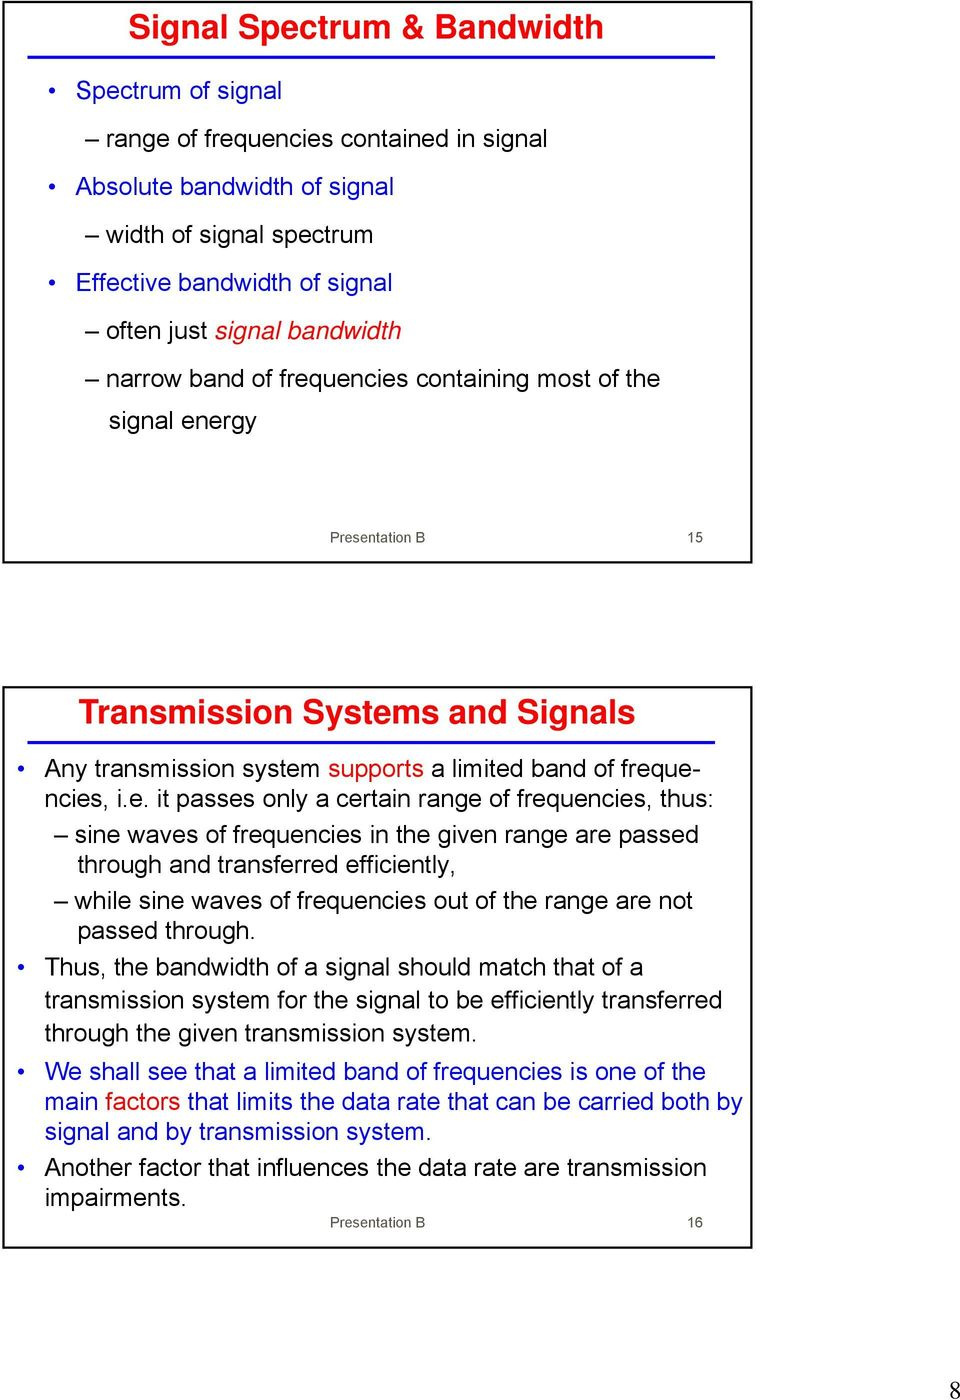 uencies containing most of the signal energy Presentation B 15 Transmission Systems and Signals Any transmission system supports a limited band of frequencies, i.e. it passes only a certain range of